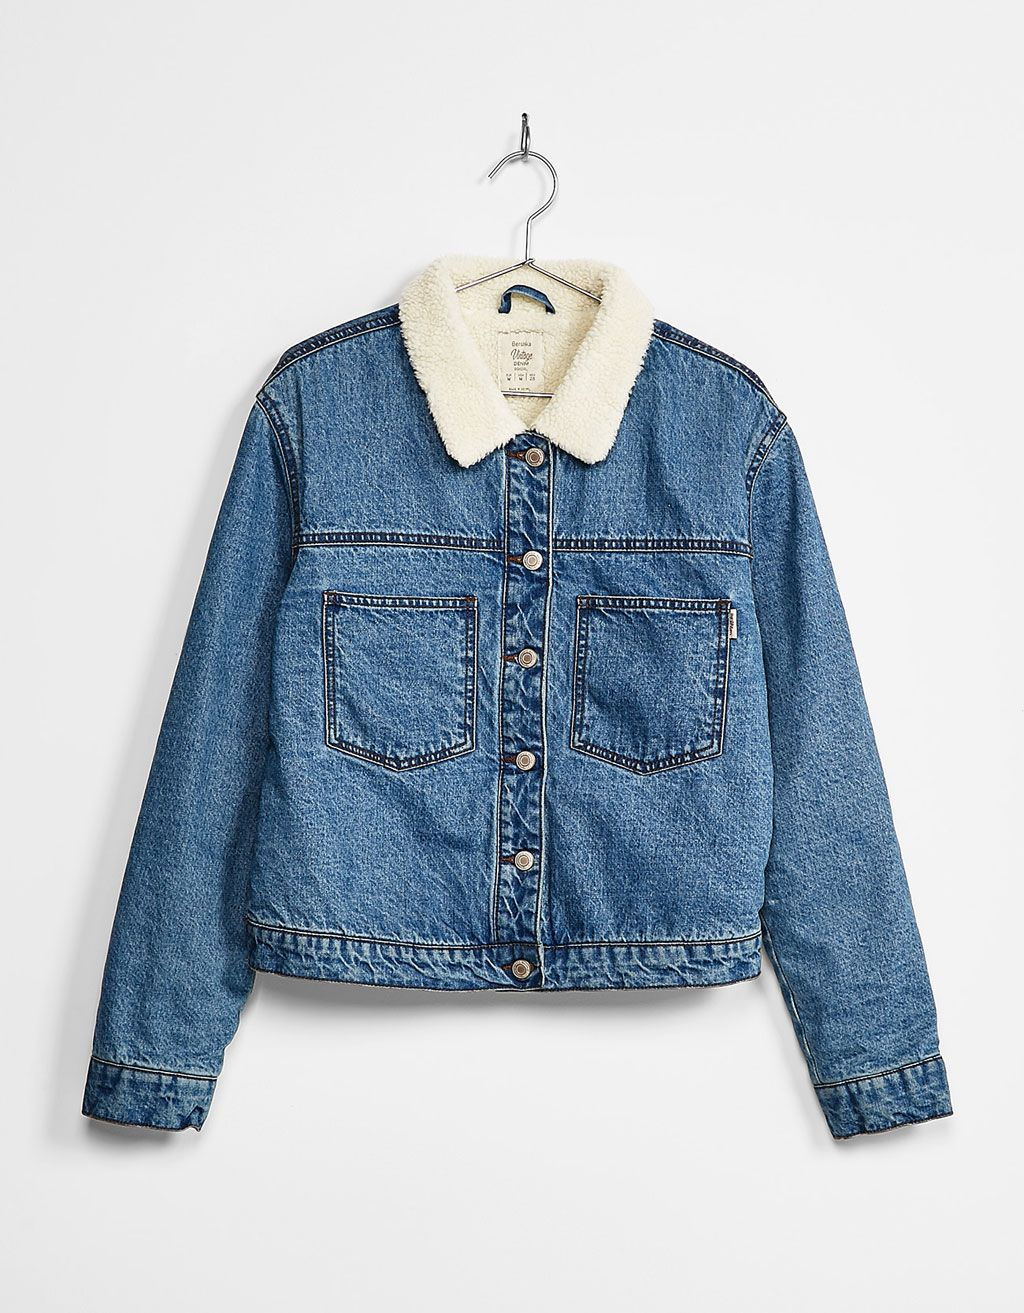 Denim jacket with fleece lining - Coats and jackets - Bershka Israel ... 05efb3f100